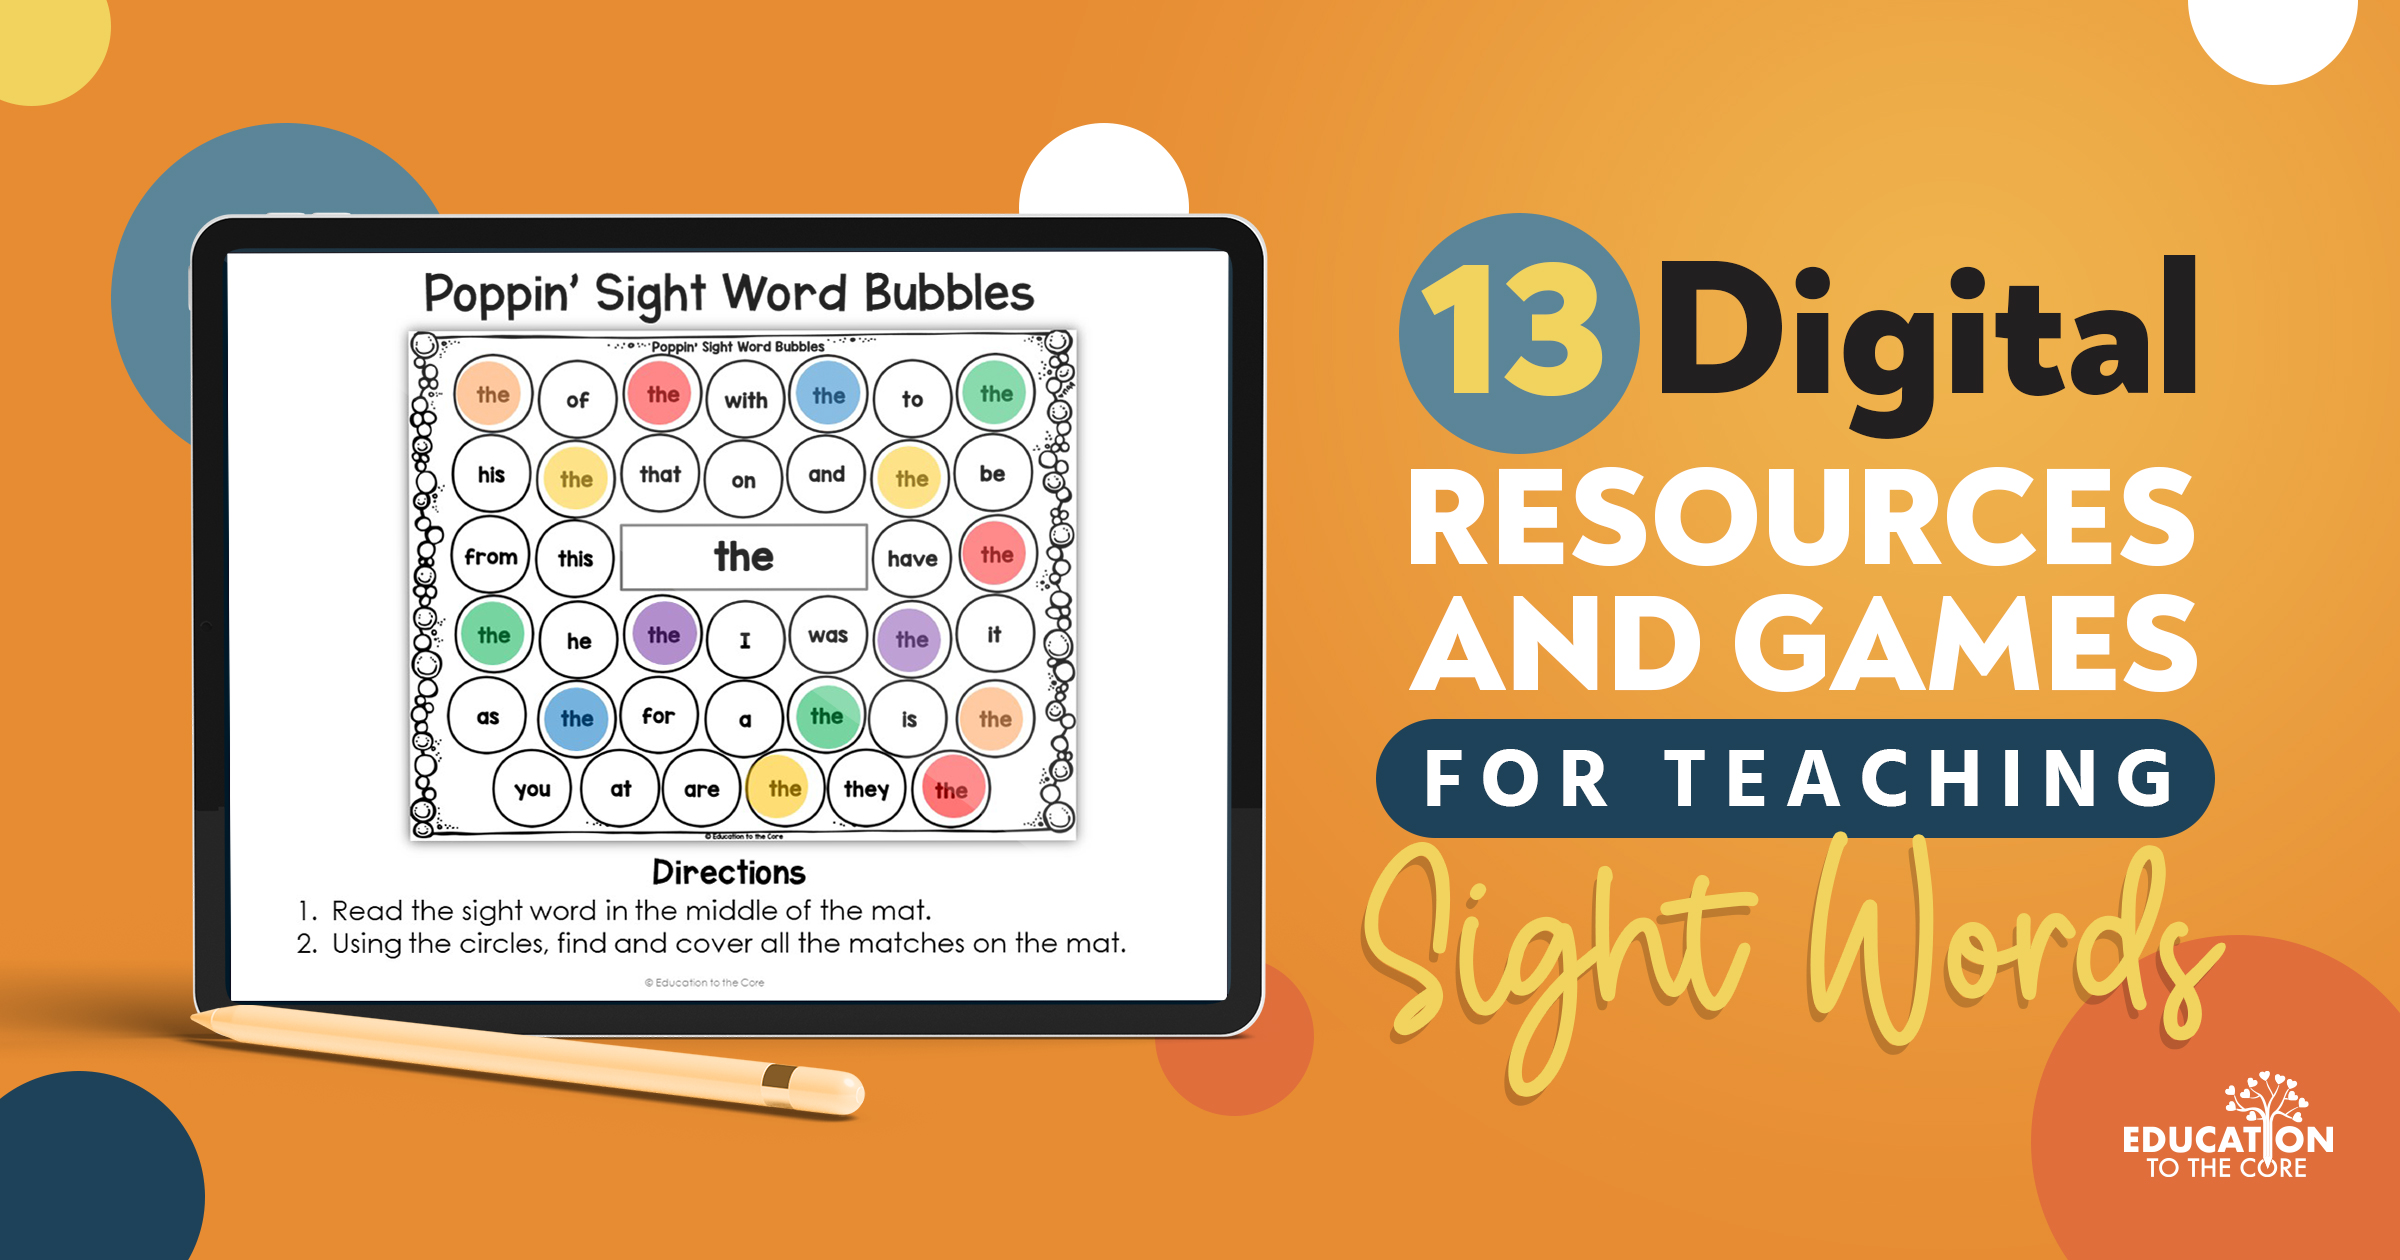 13 Digital Resources and Games for Sight Words